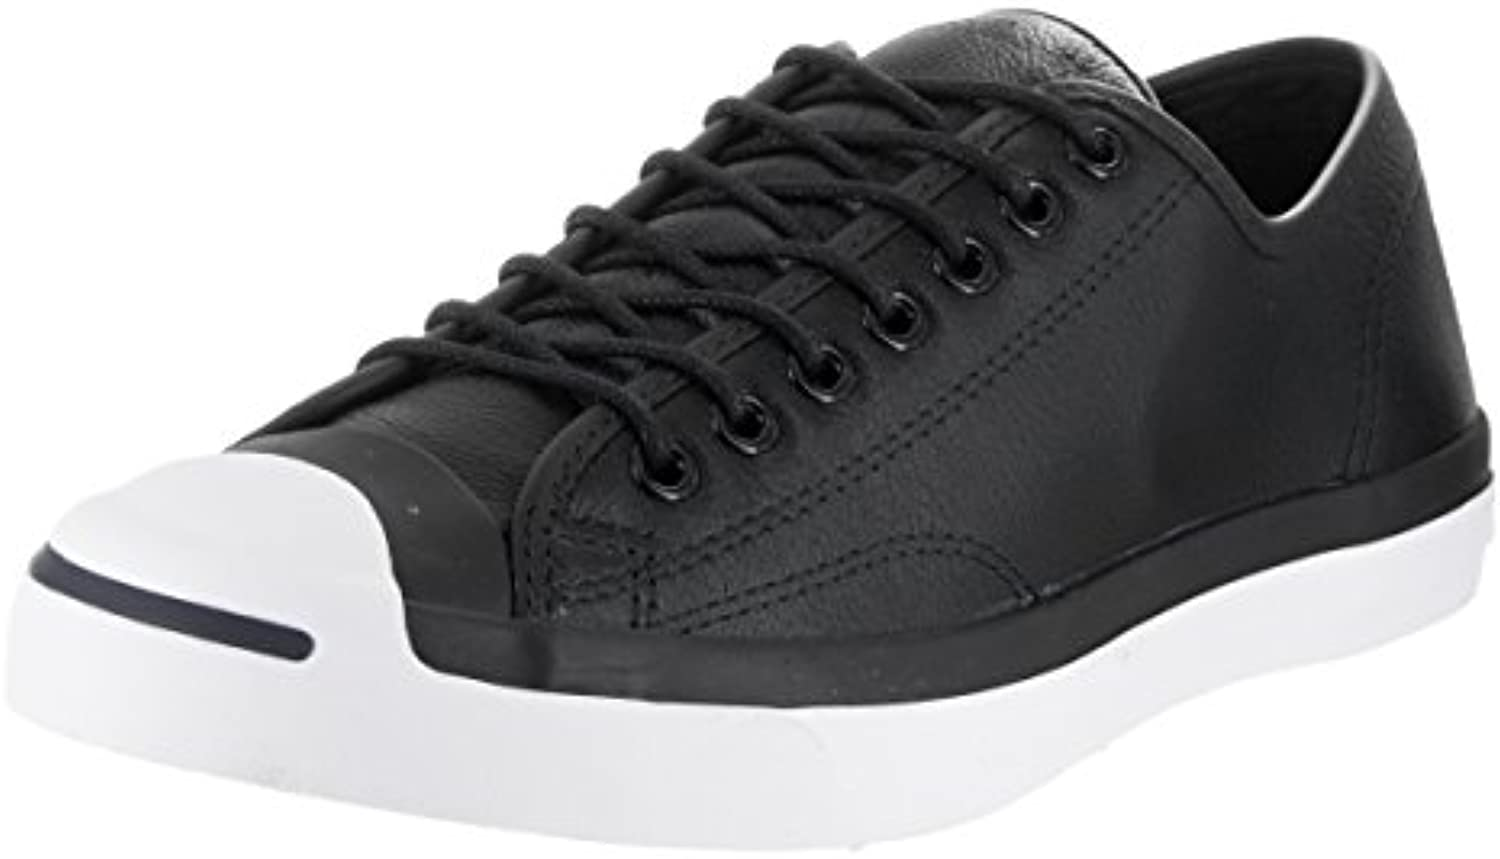 Converse Jack Purcell Jack buey Zapato Casual